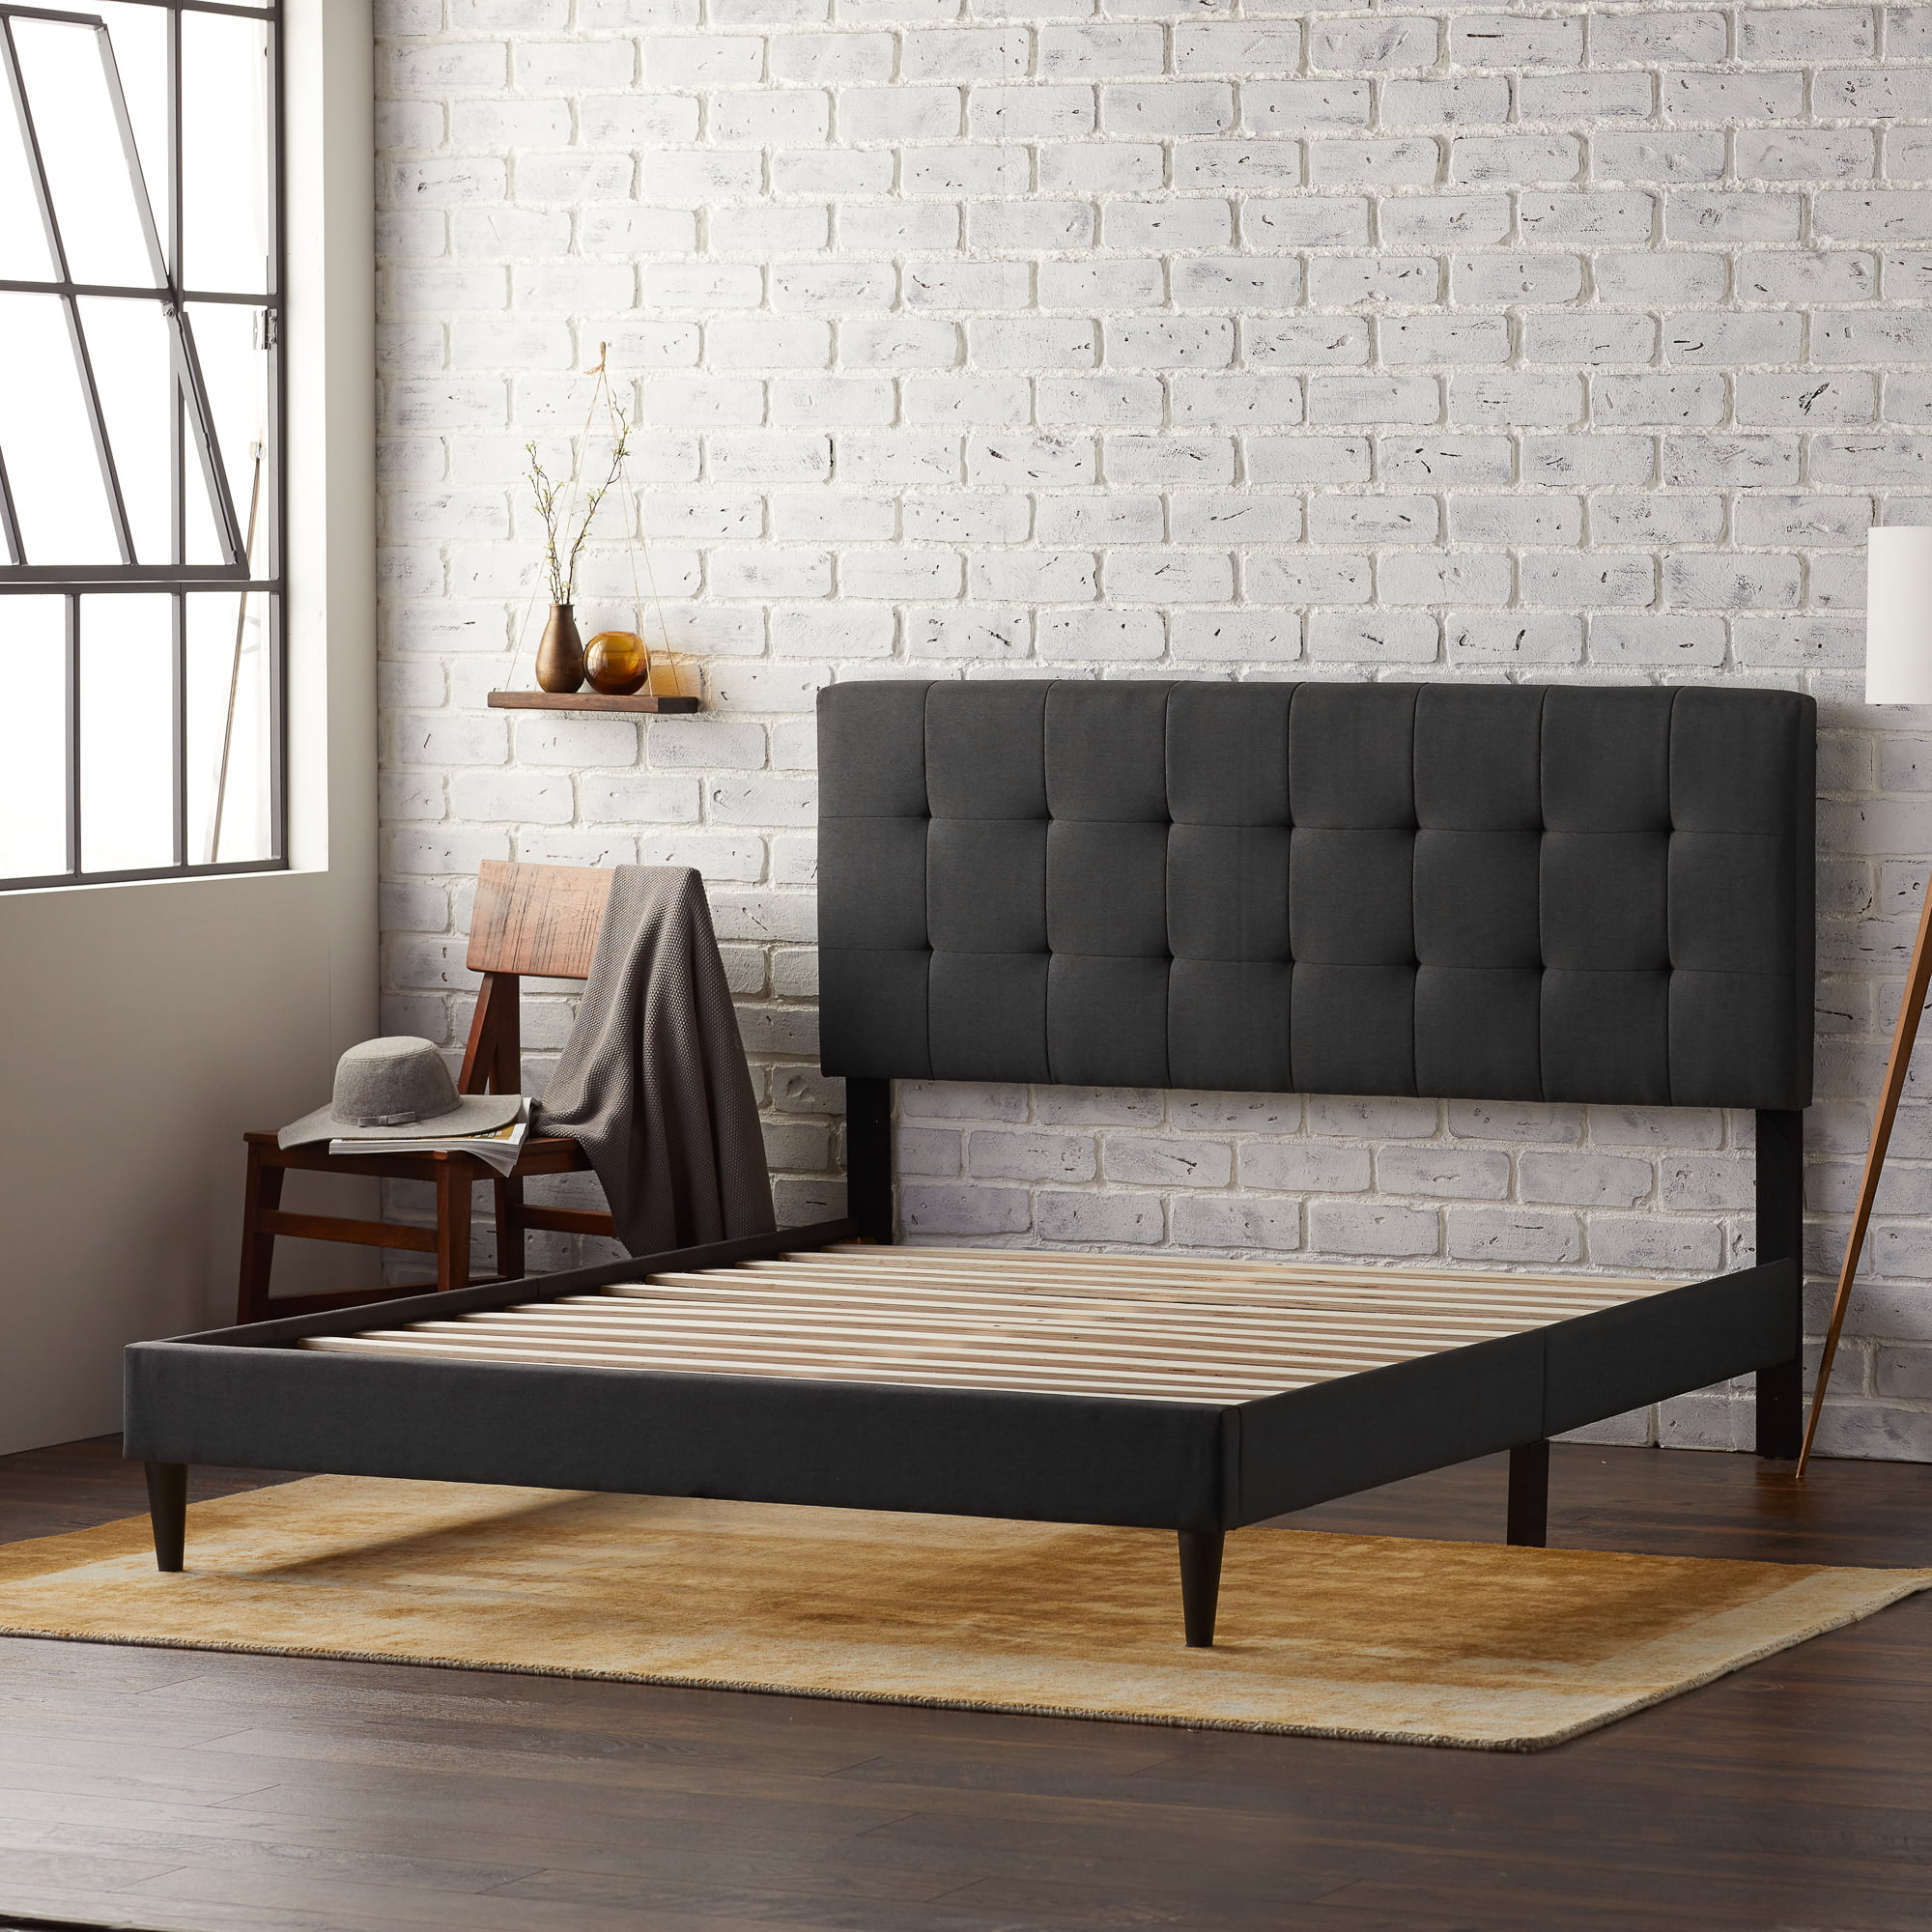 rest haven upholstered platform bed frame with square tufted headboard queen charcoal